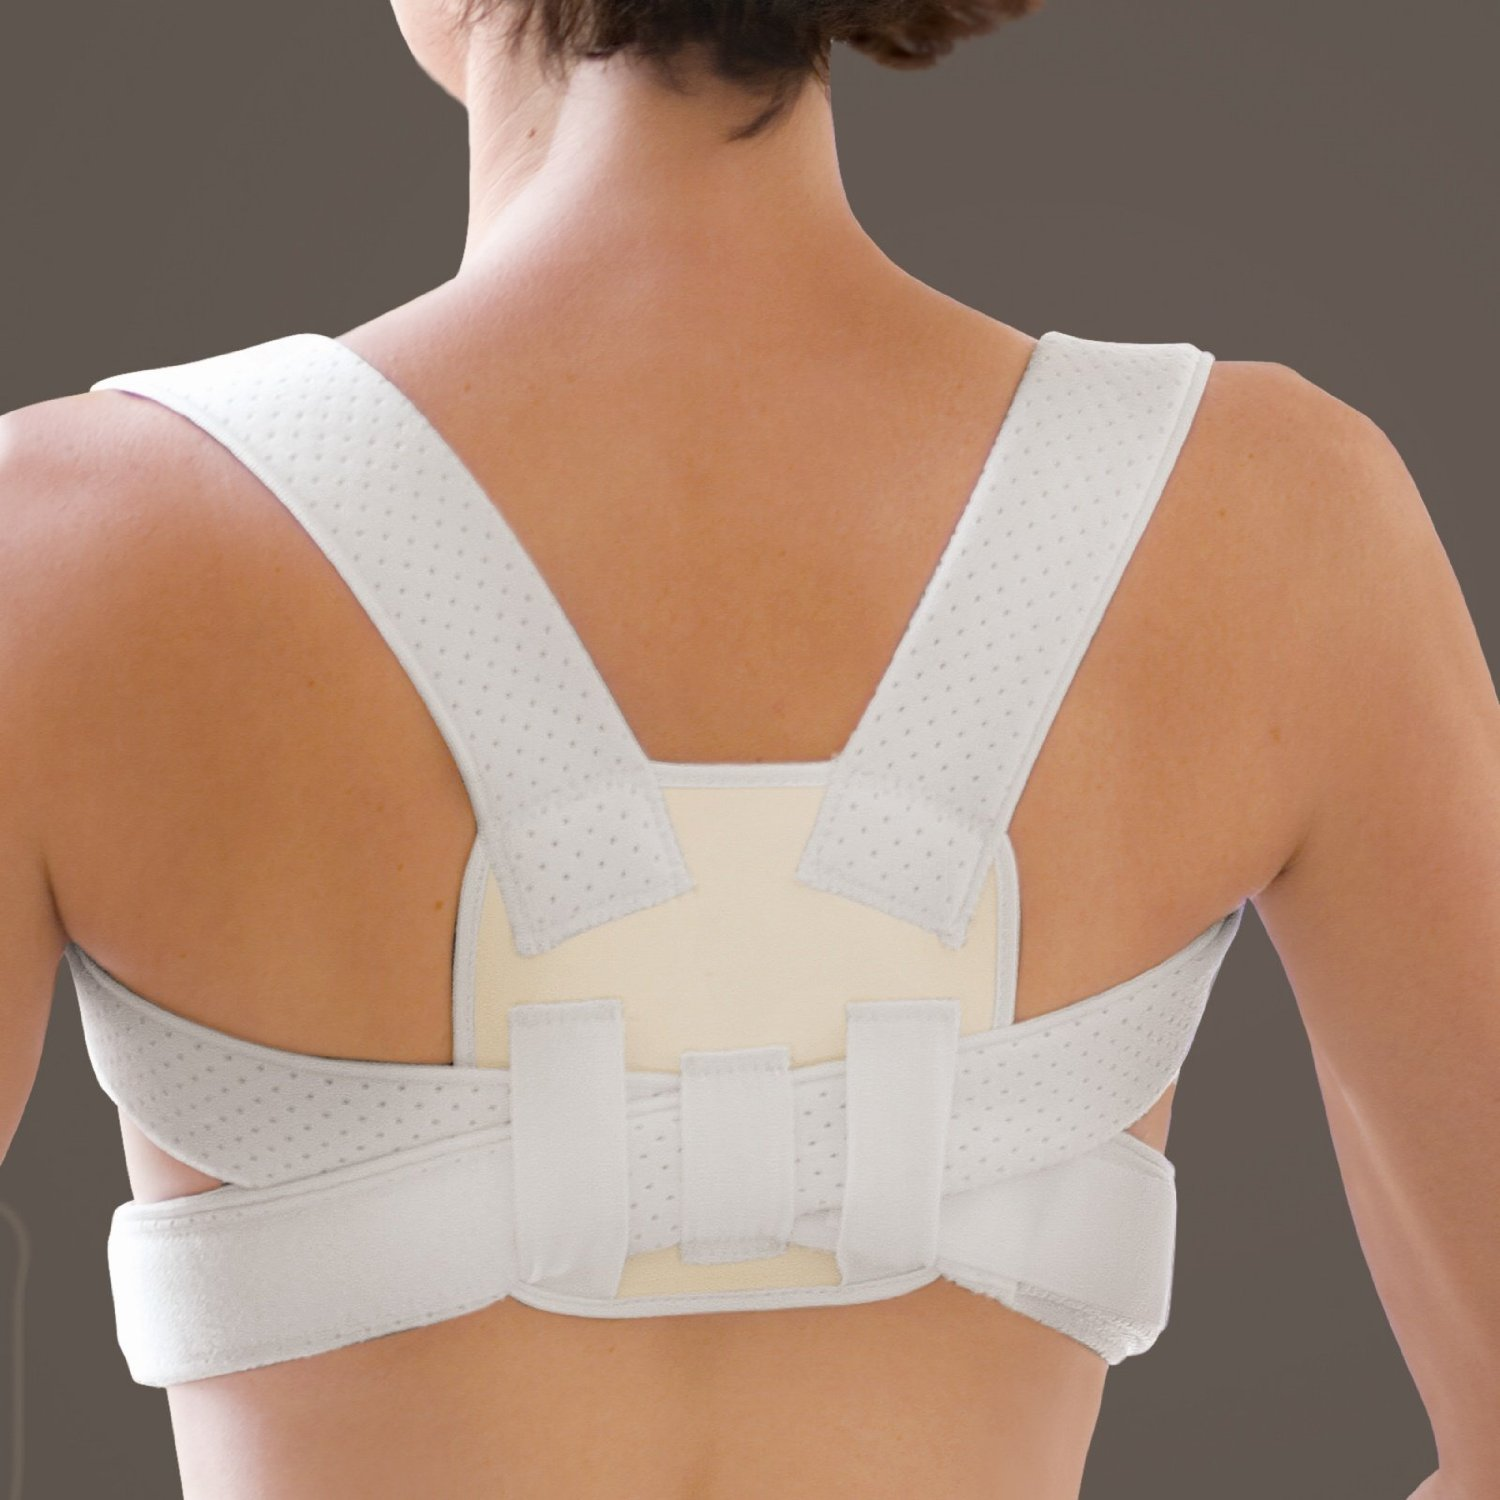 Purchasing Back Posture Braces For Back Pain Relief